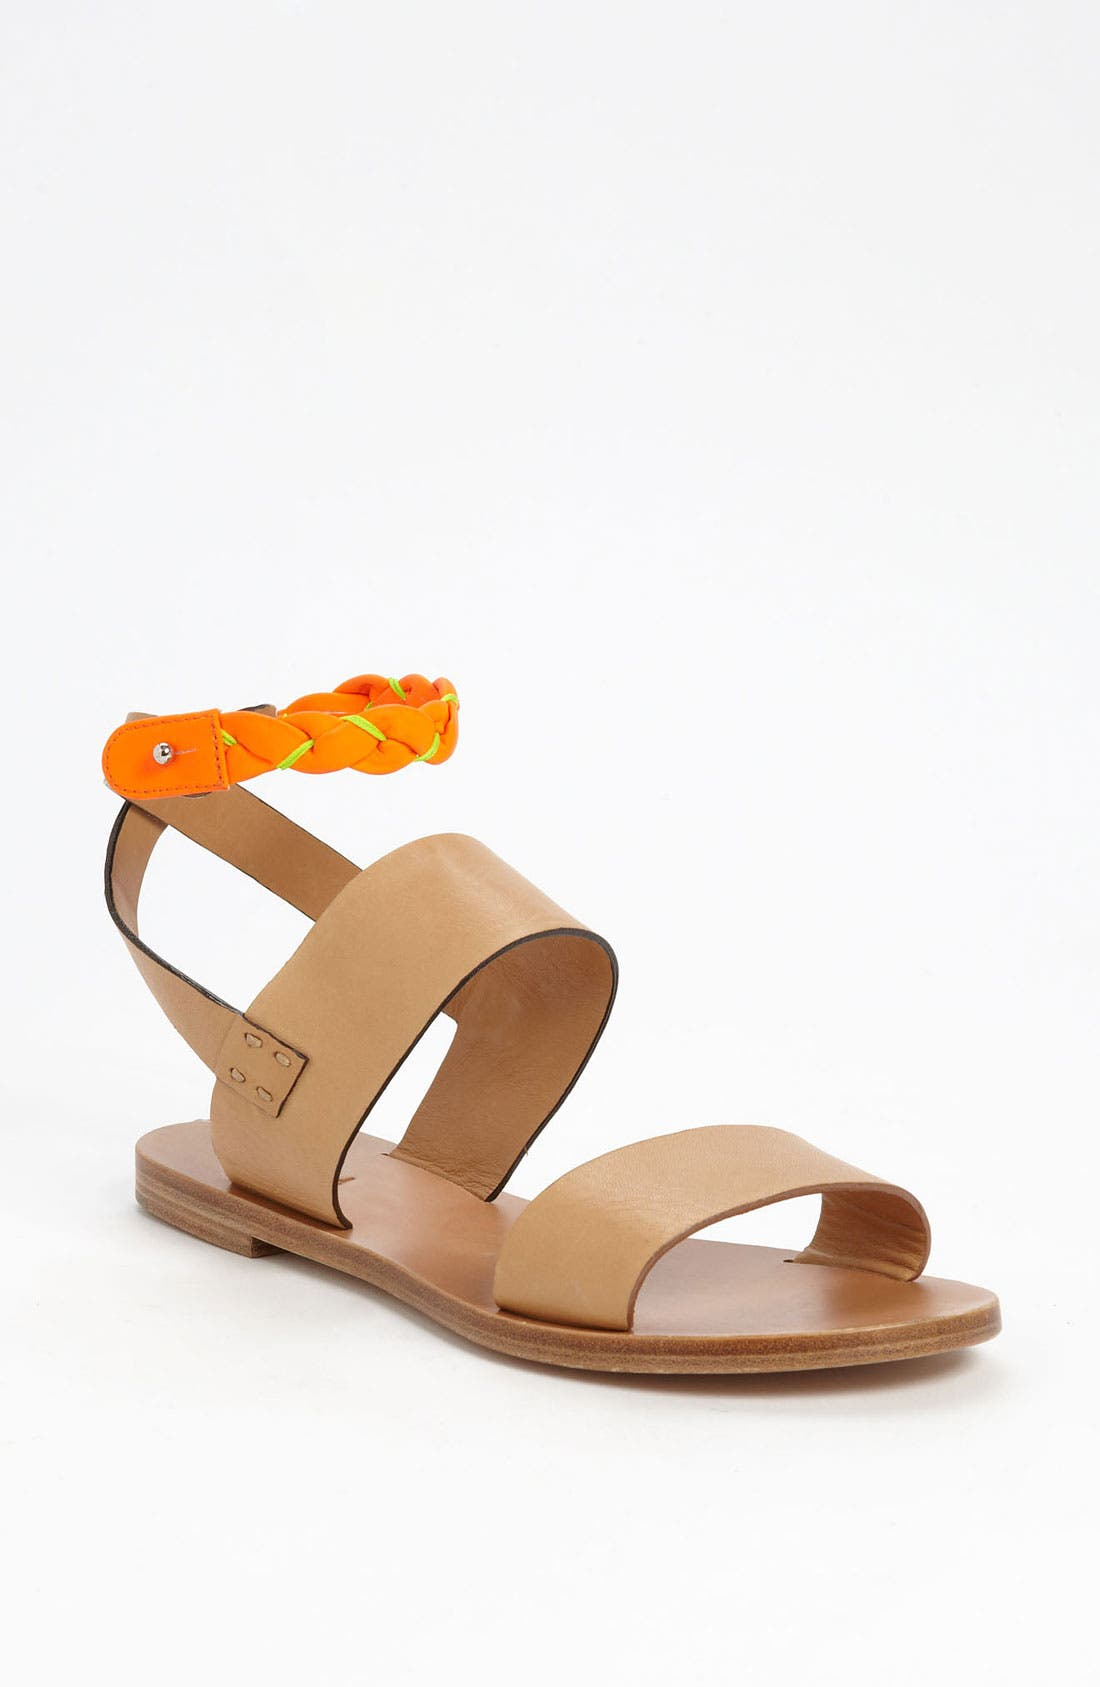 Alternate Image 1 Selected - See by Chloé 'Summer' Sandal